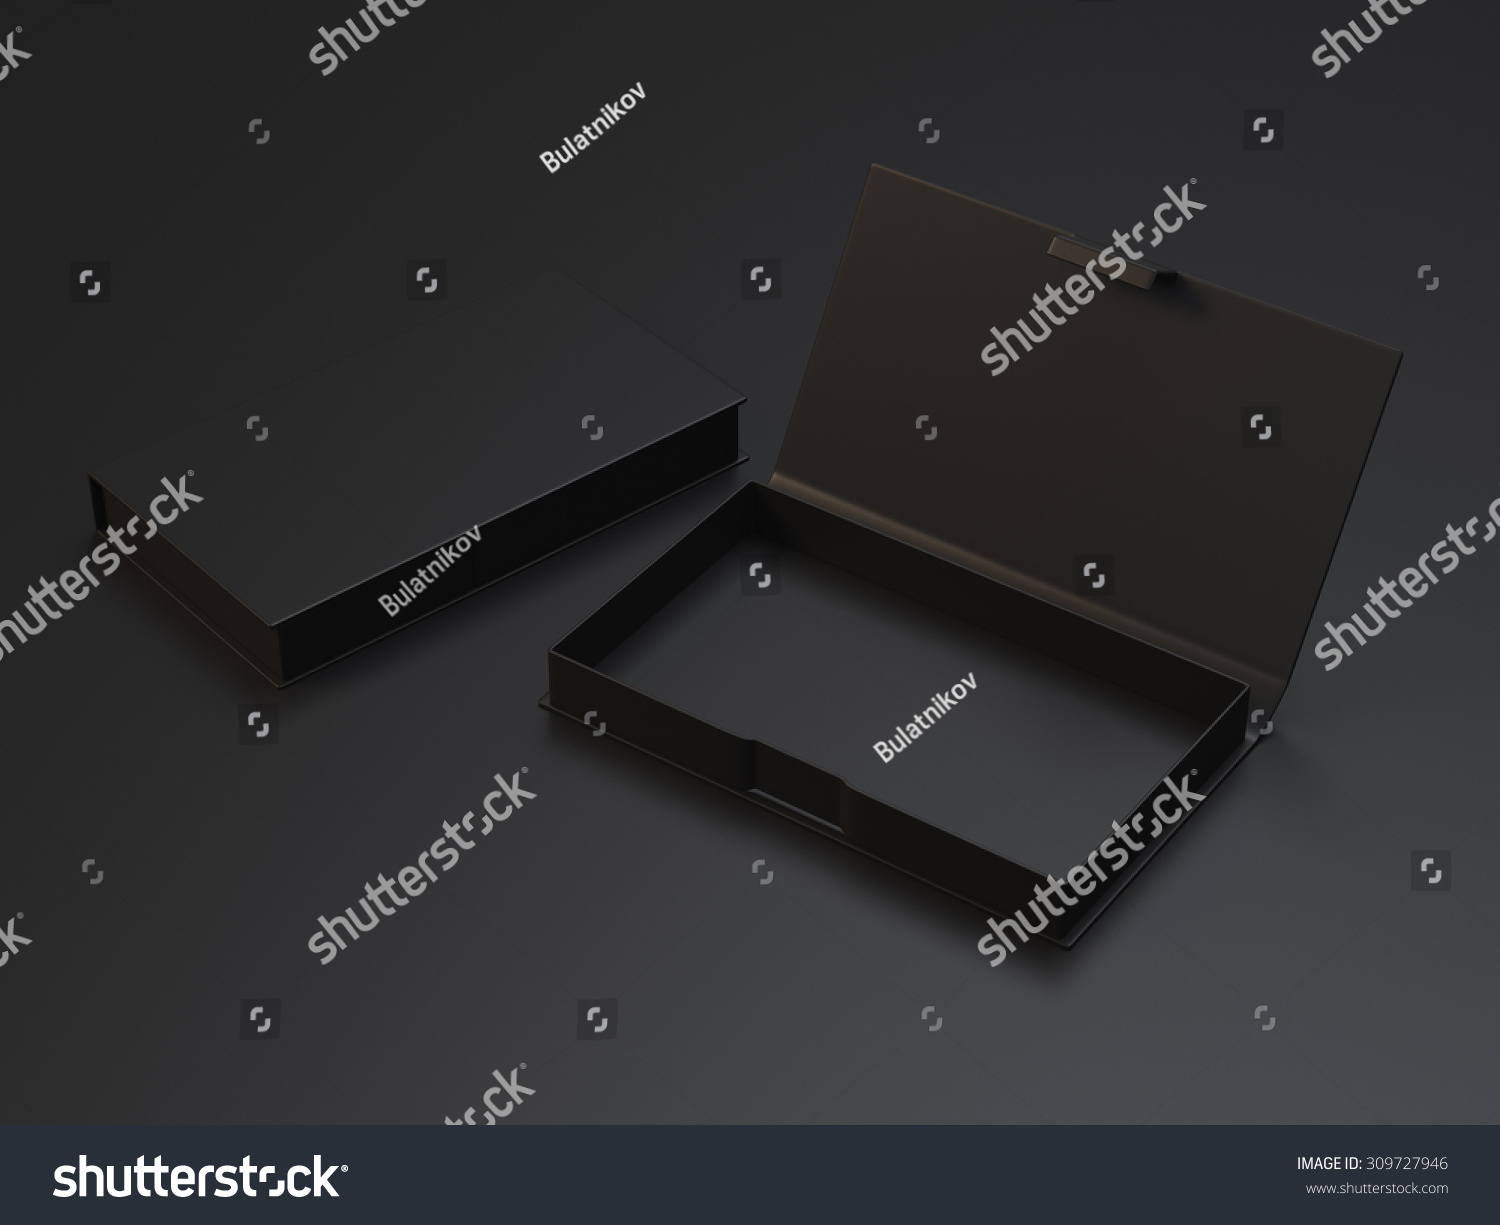 Empty black box business cards on stock illustration 309727946 empty black box for business cards on the black background magicingreecefo Images